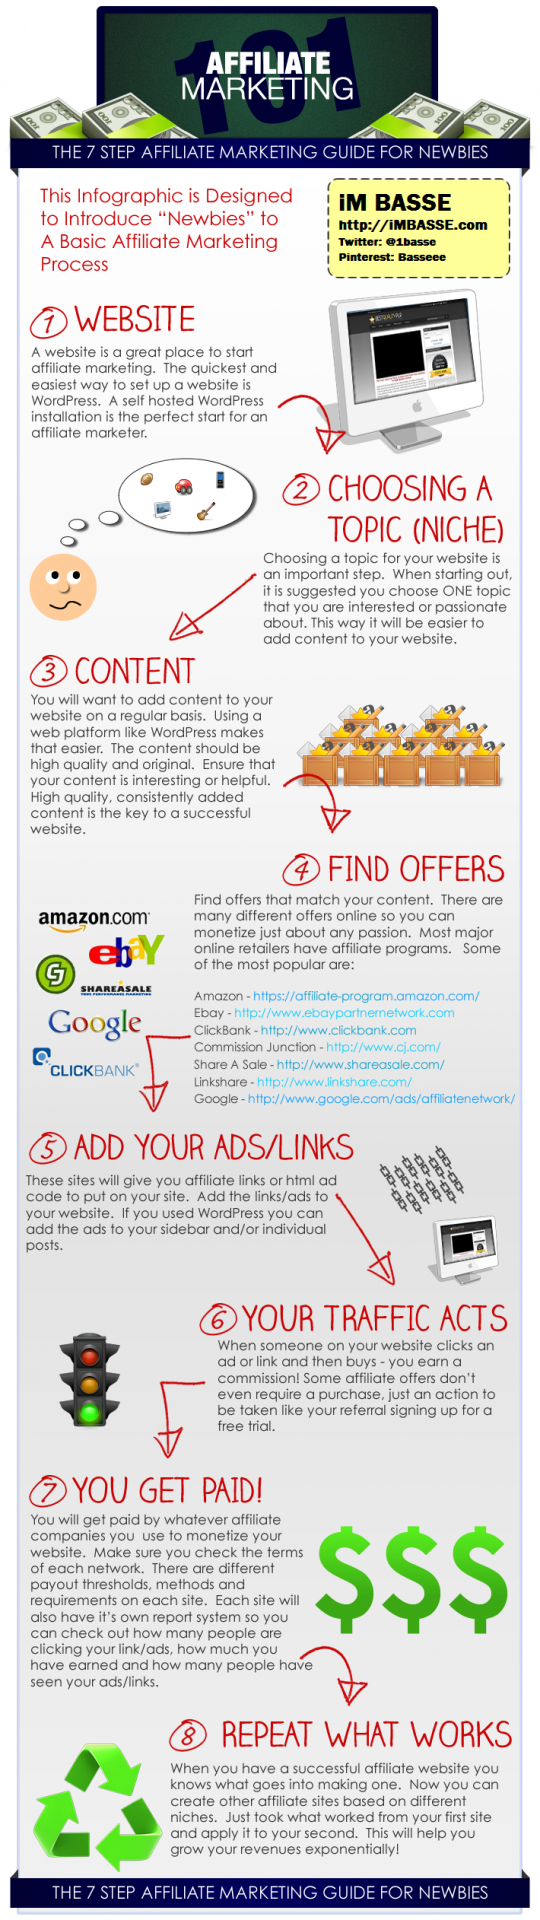 The 7 Step Affiliate Marketing Guide For Newbies